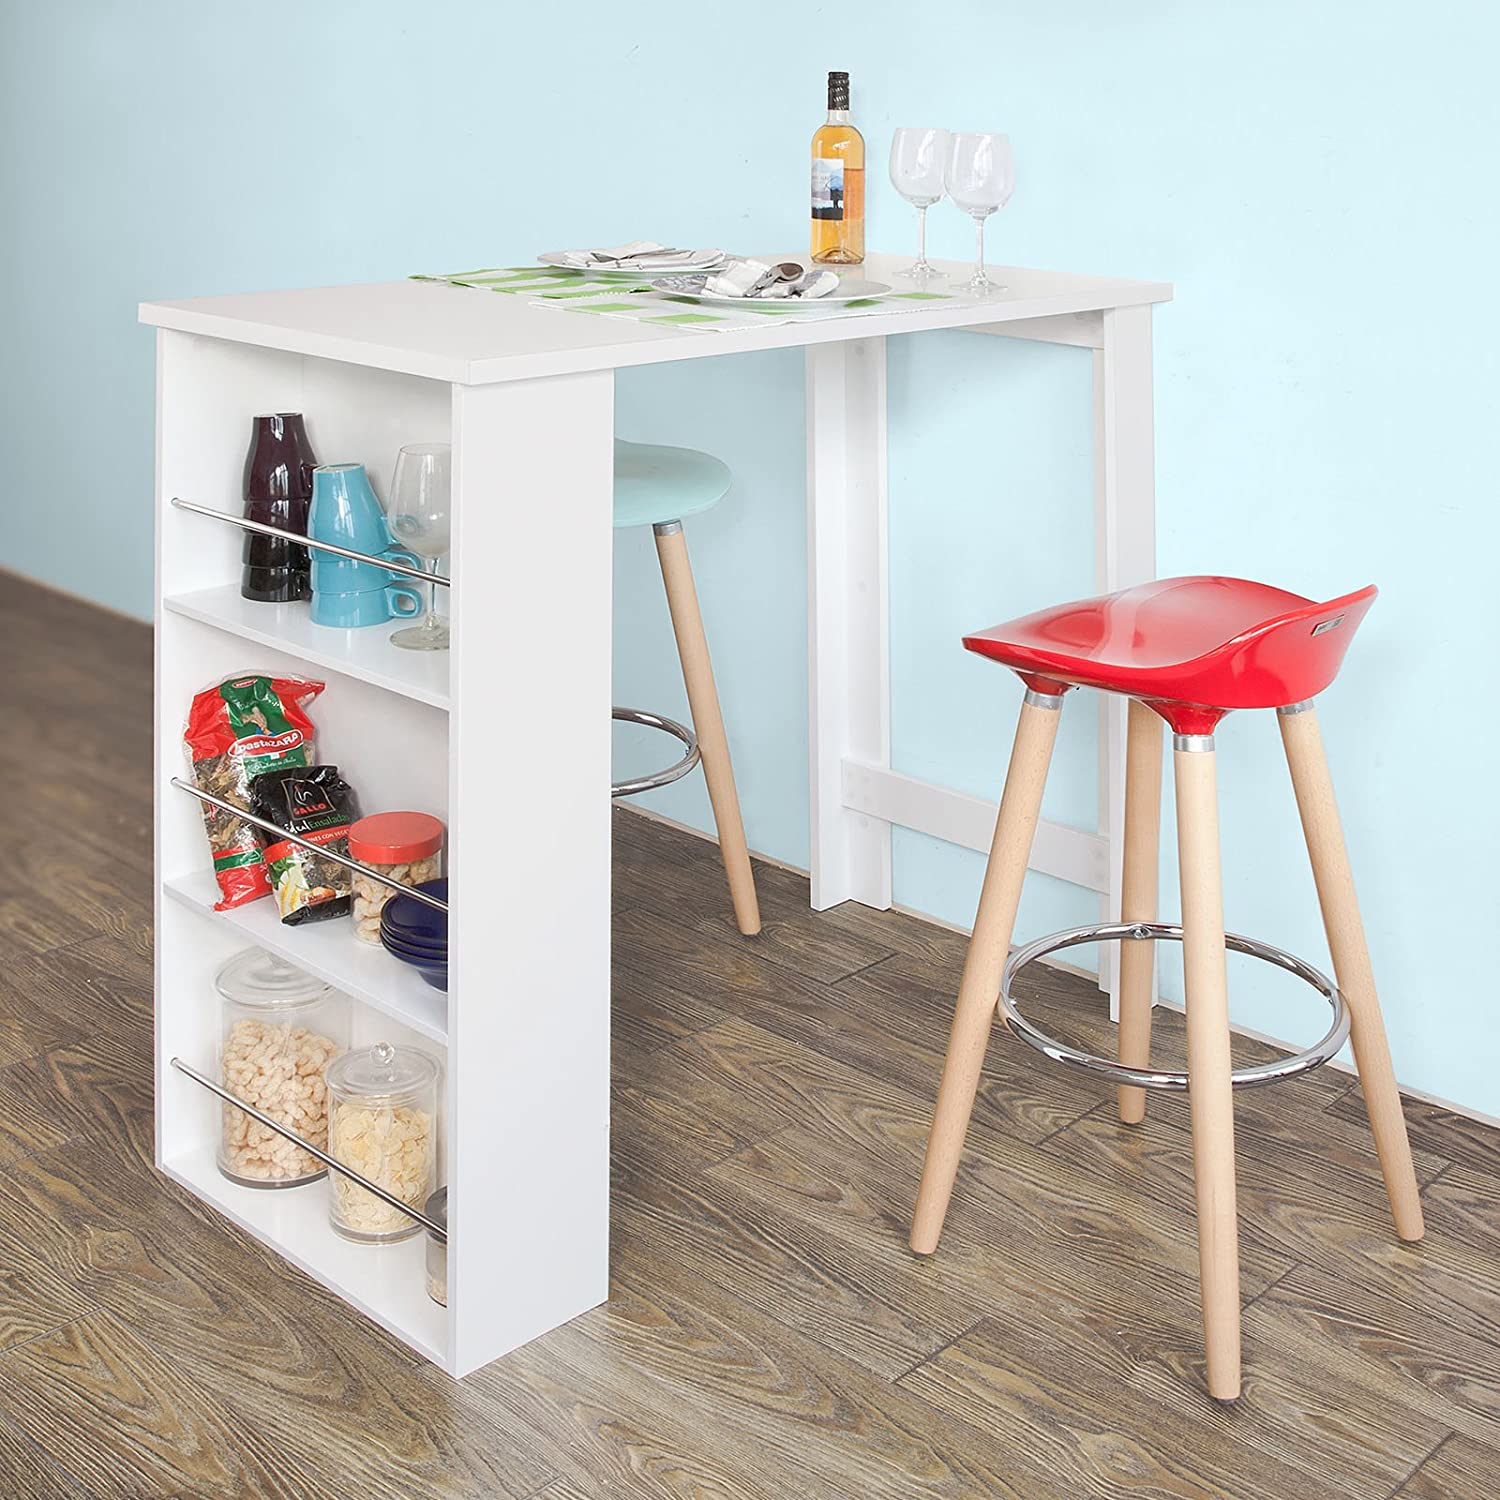 Cuisine avec mange debout bq68 jornalagora - Amazon table de bar ...